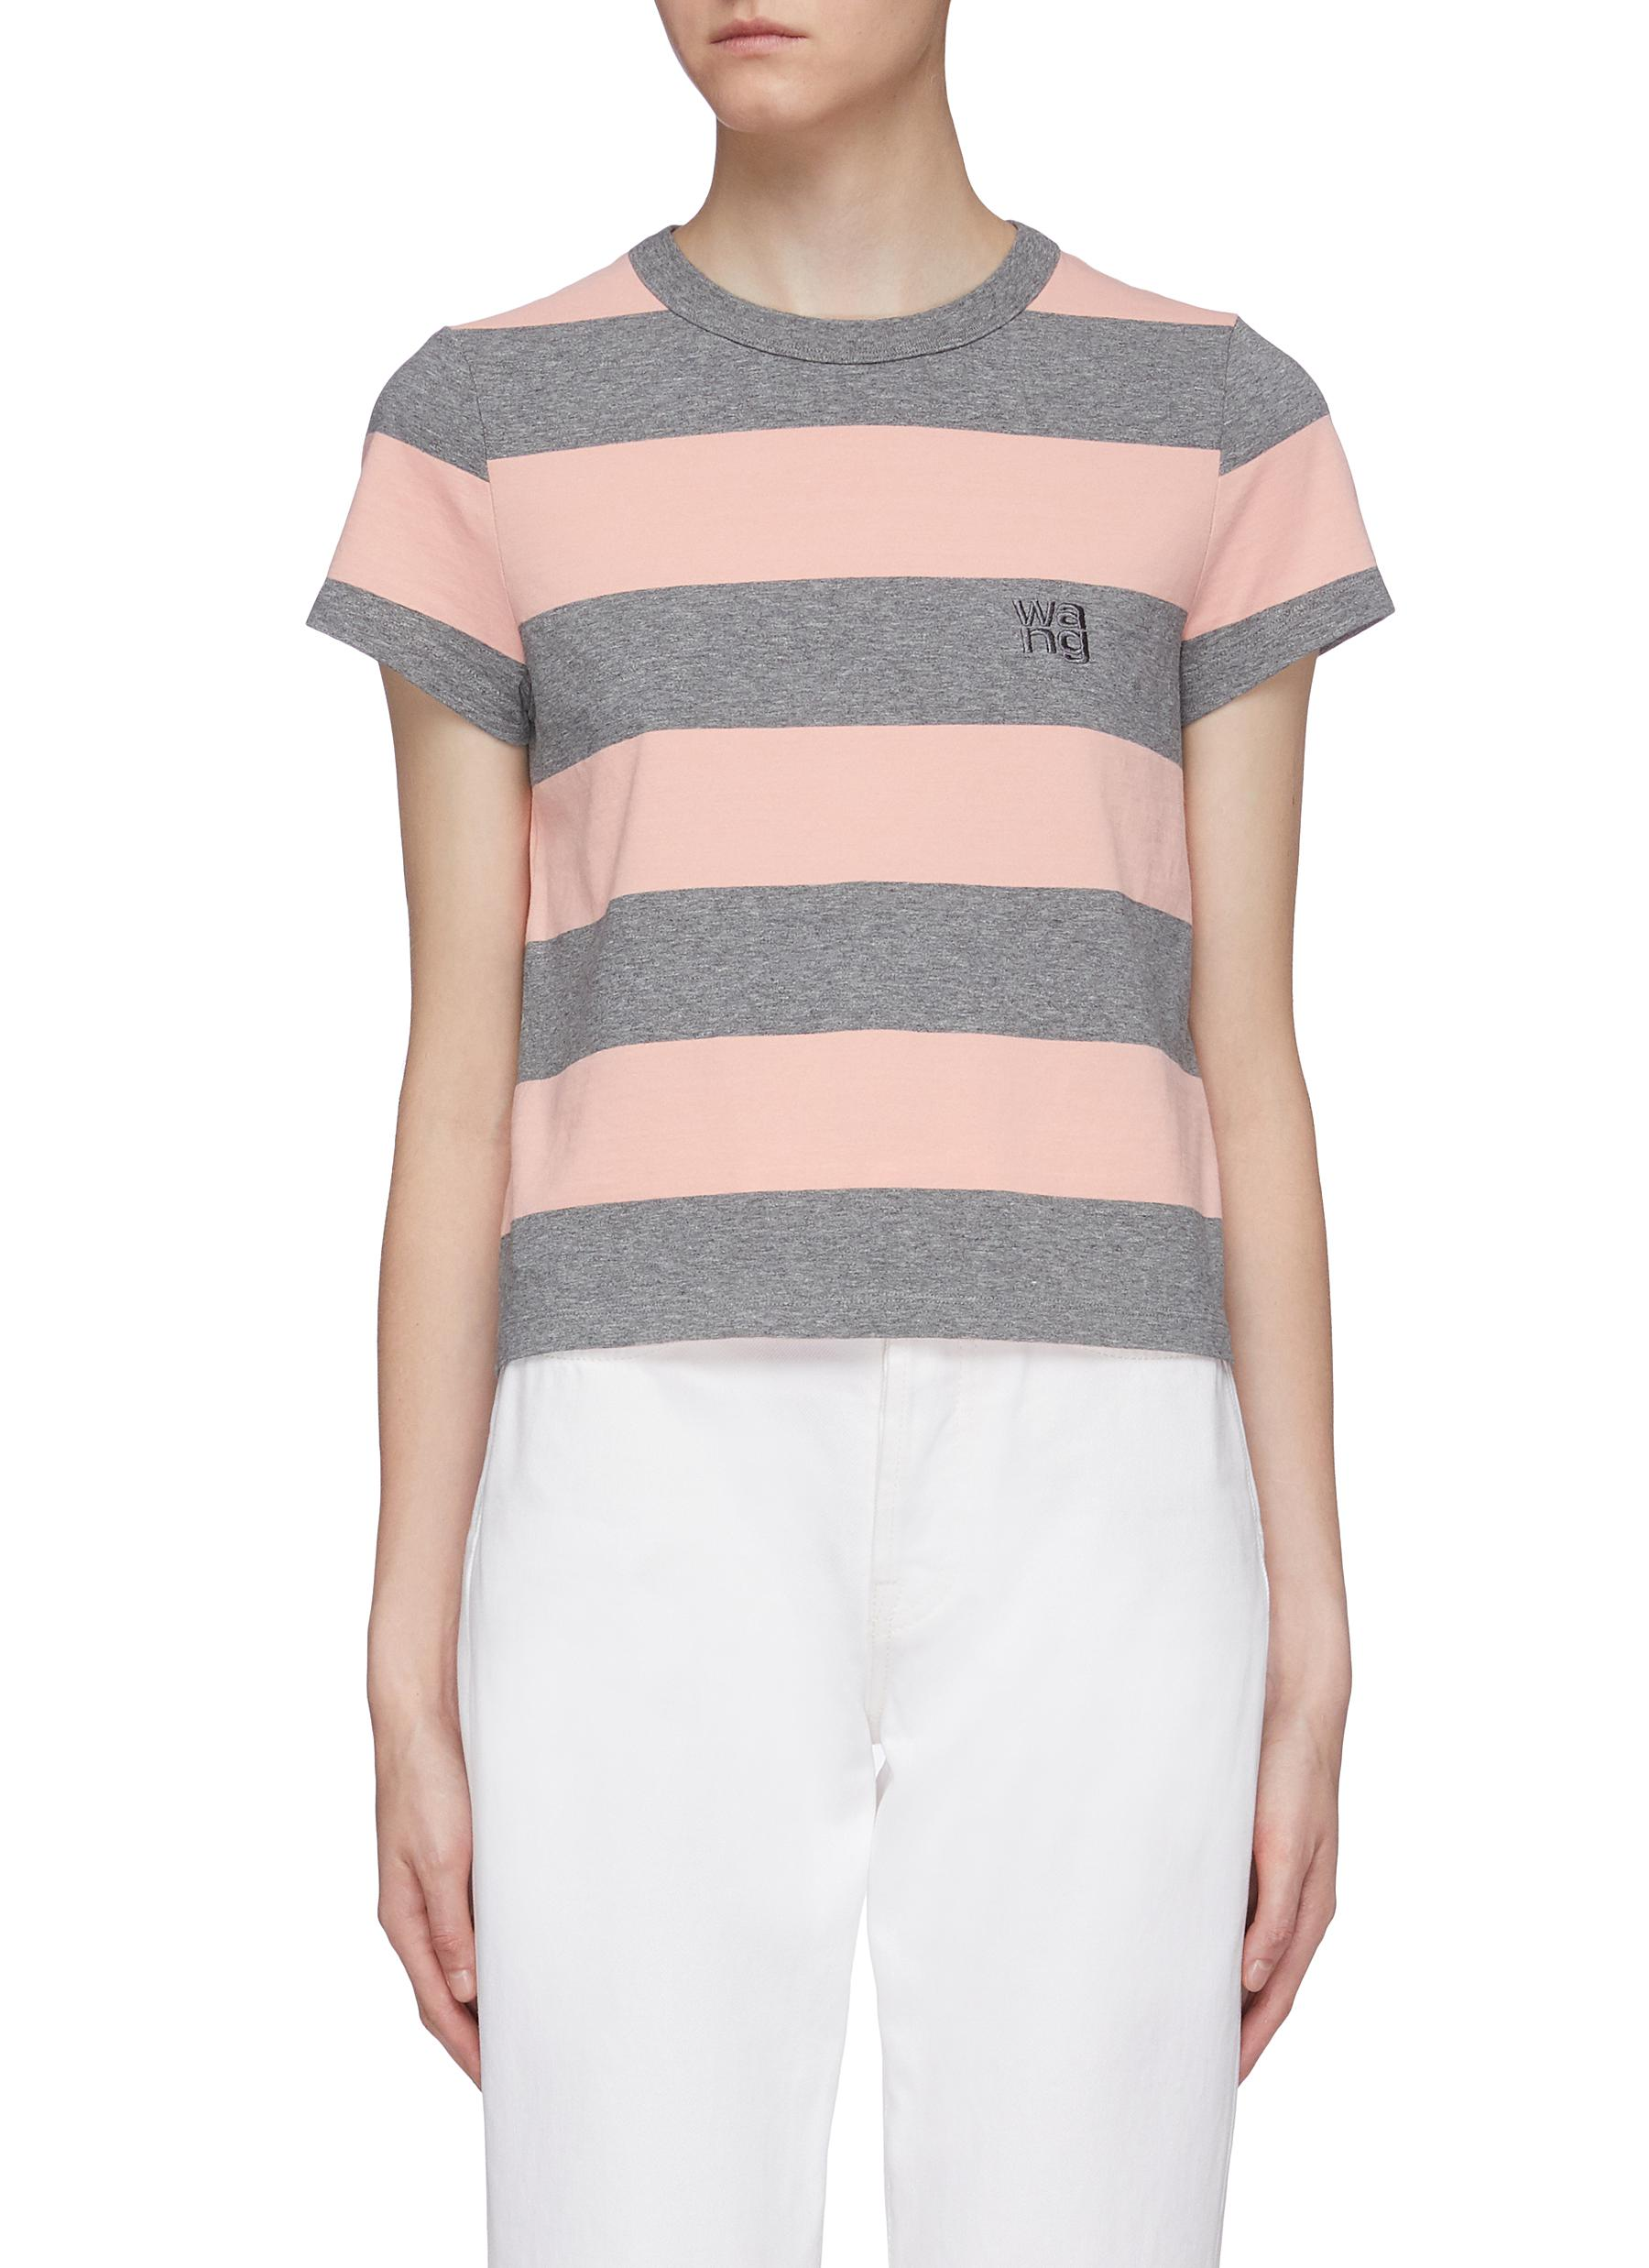 Wash + Go logo embroidered stripe T-shirt by Alexanderwang.T